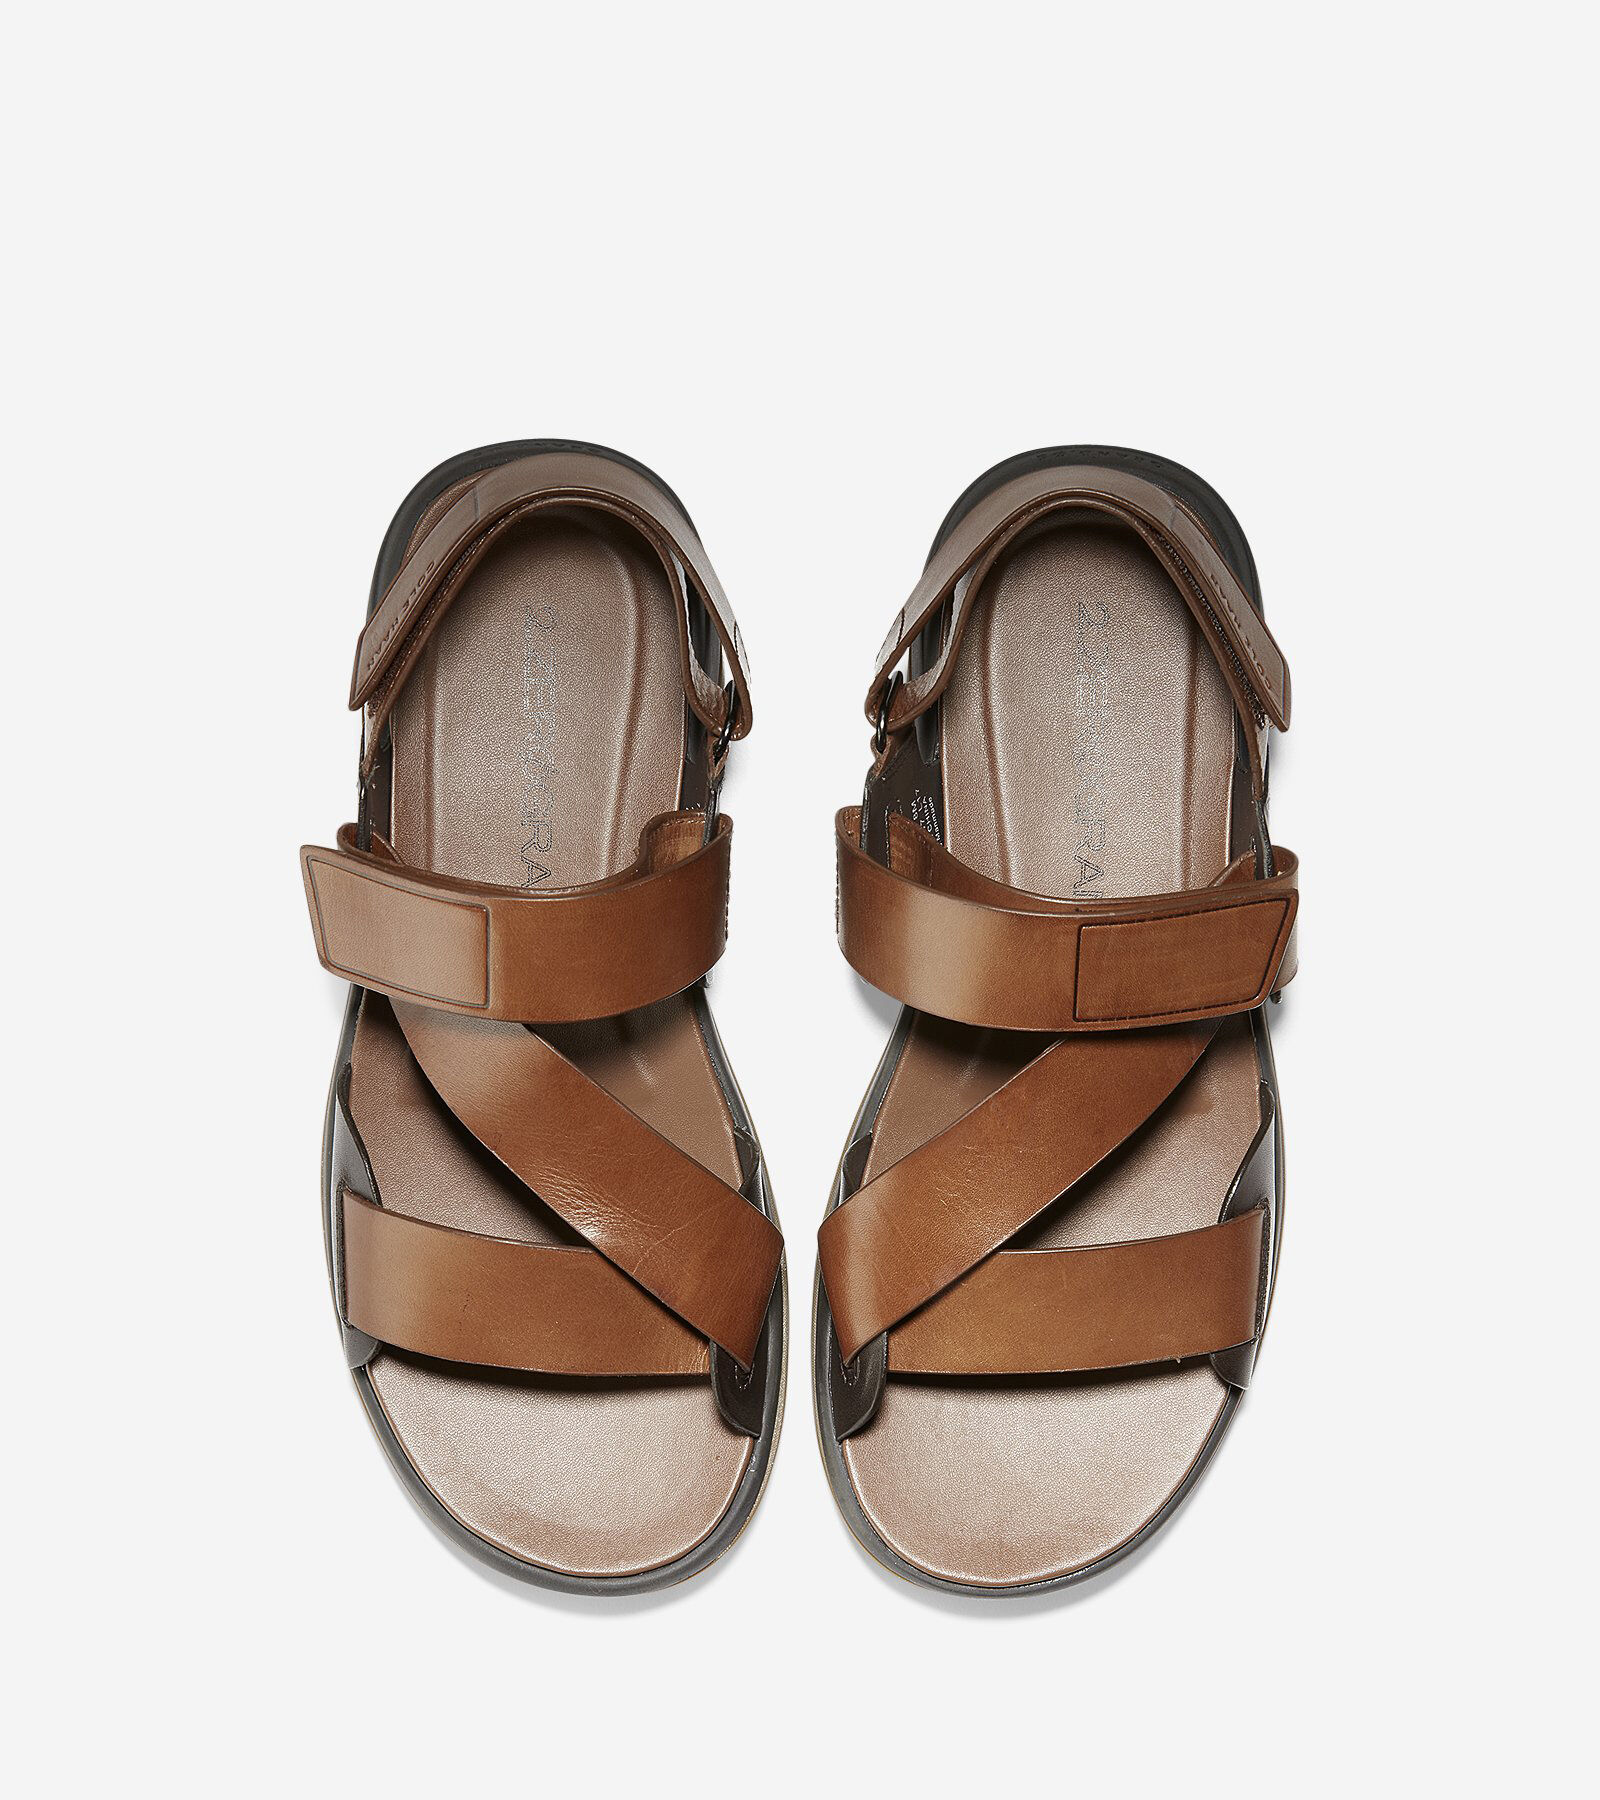 outlet where to buy Cole Haan Slingback Multistrap Sandals clearance 2014 new fake online 8bxPikB